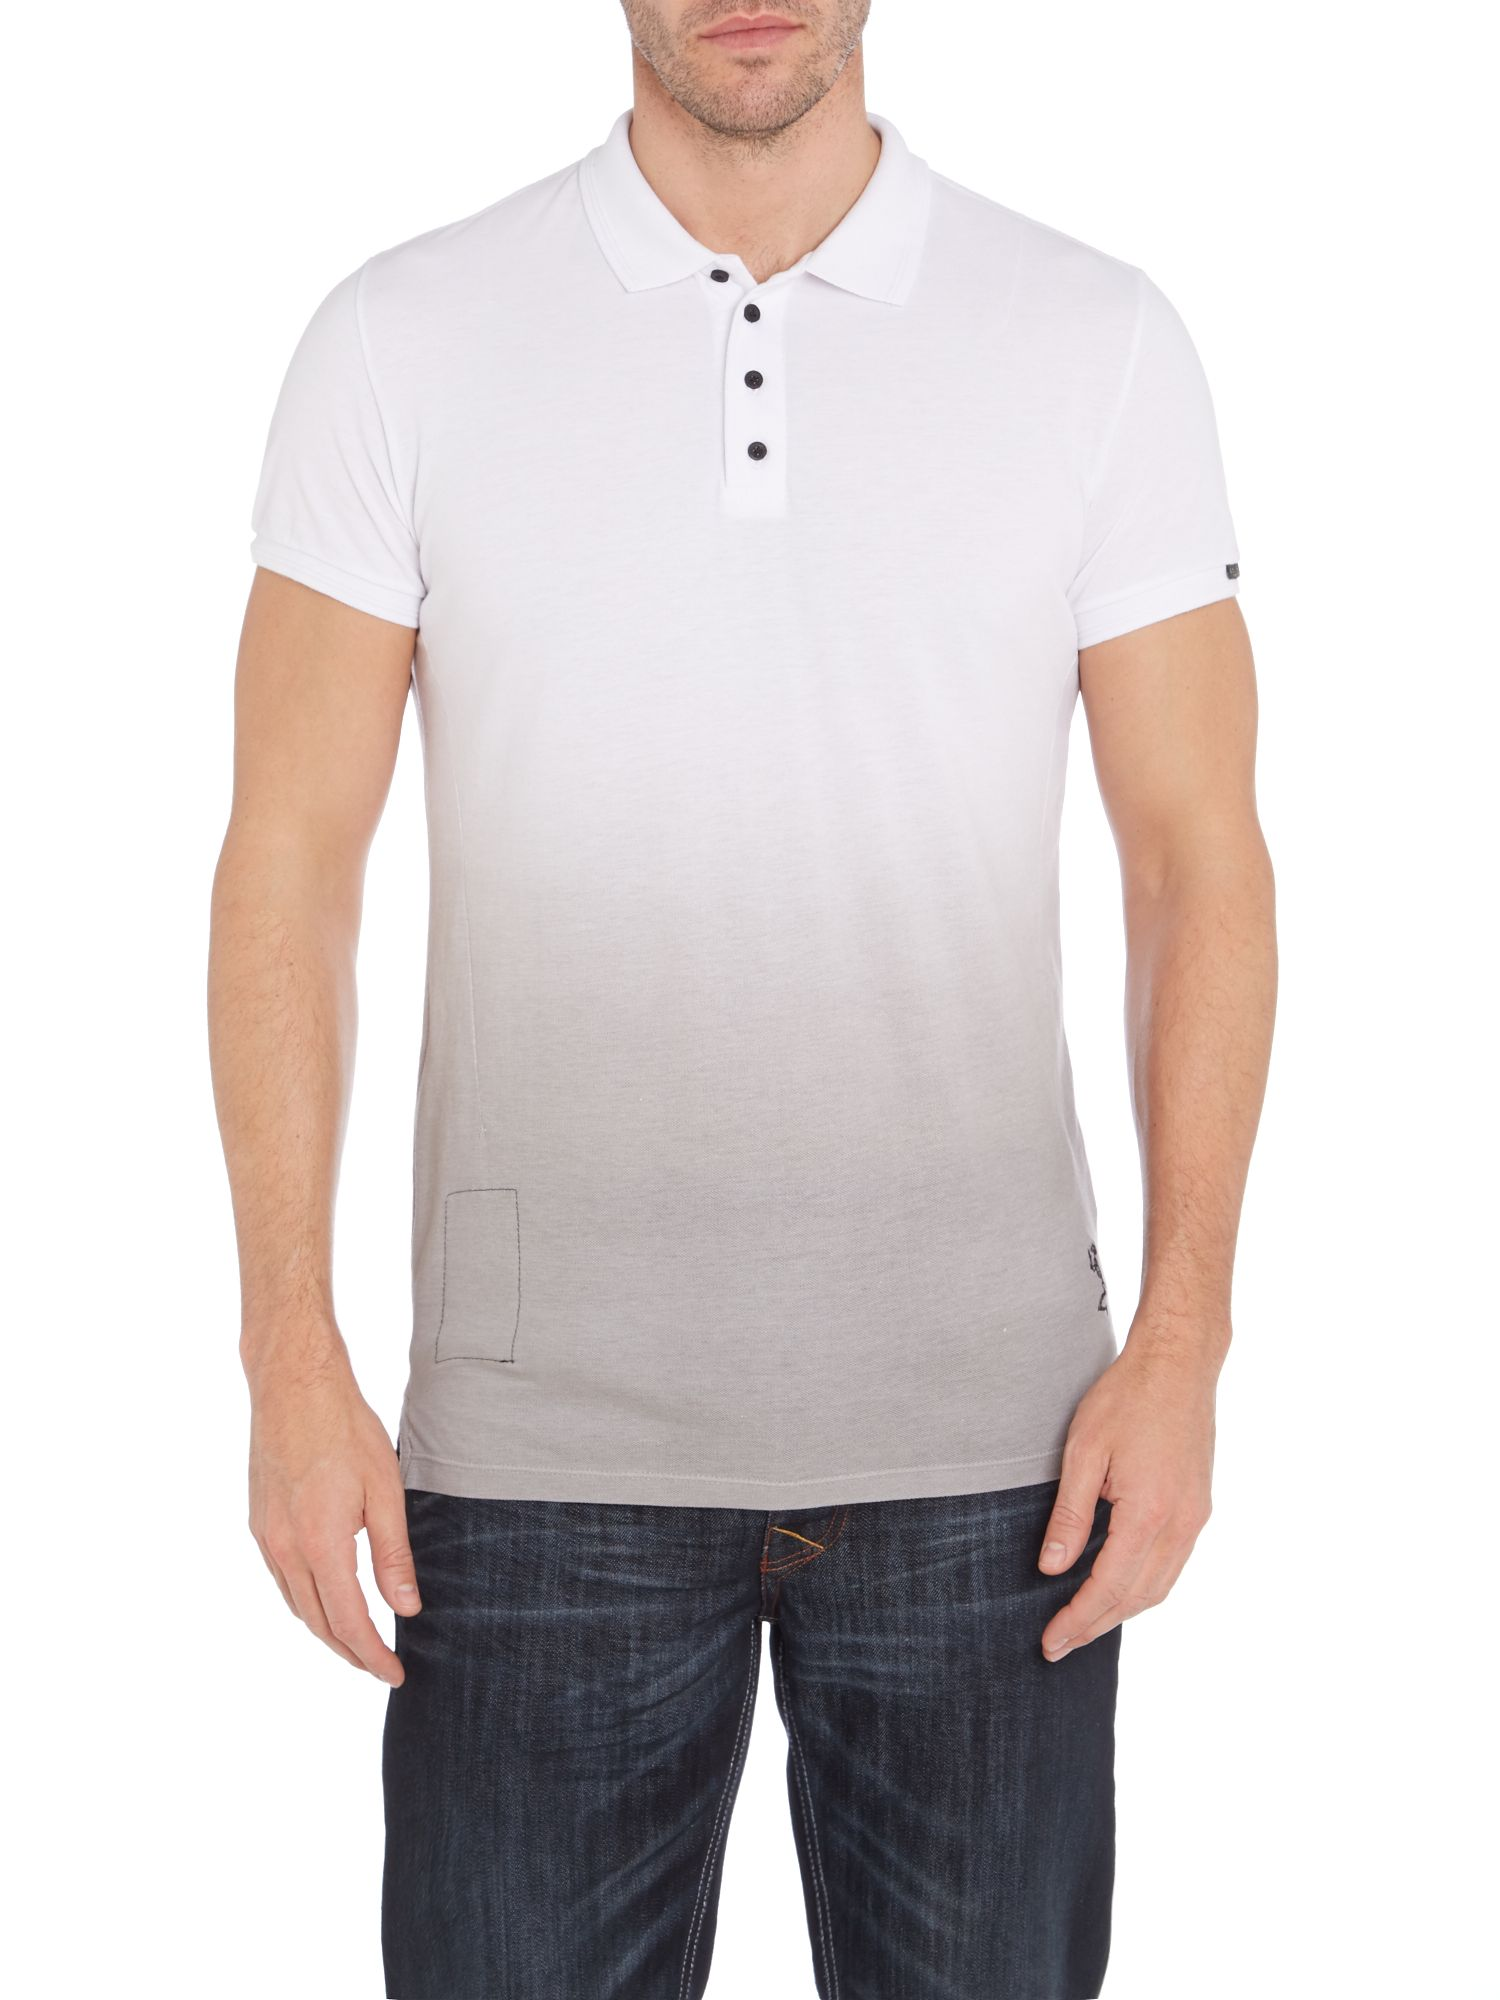 Ombre polo shirt